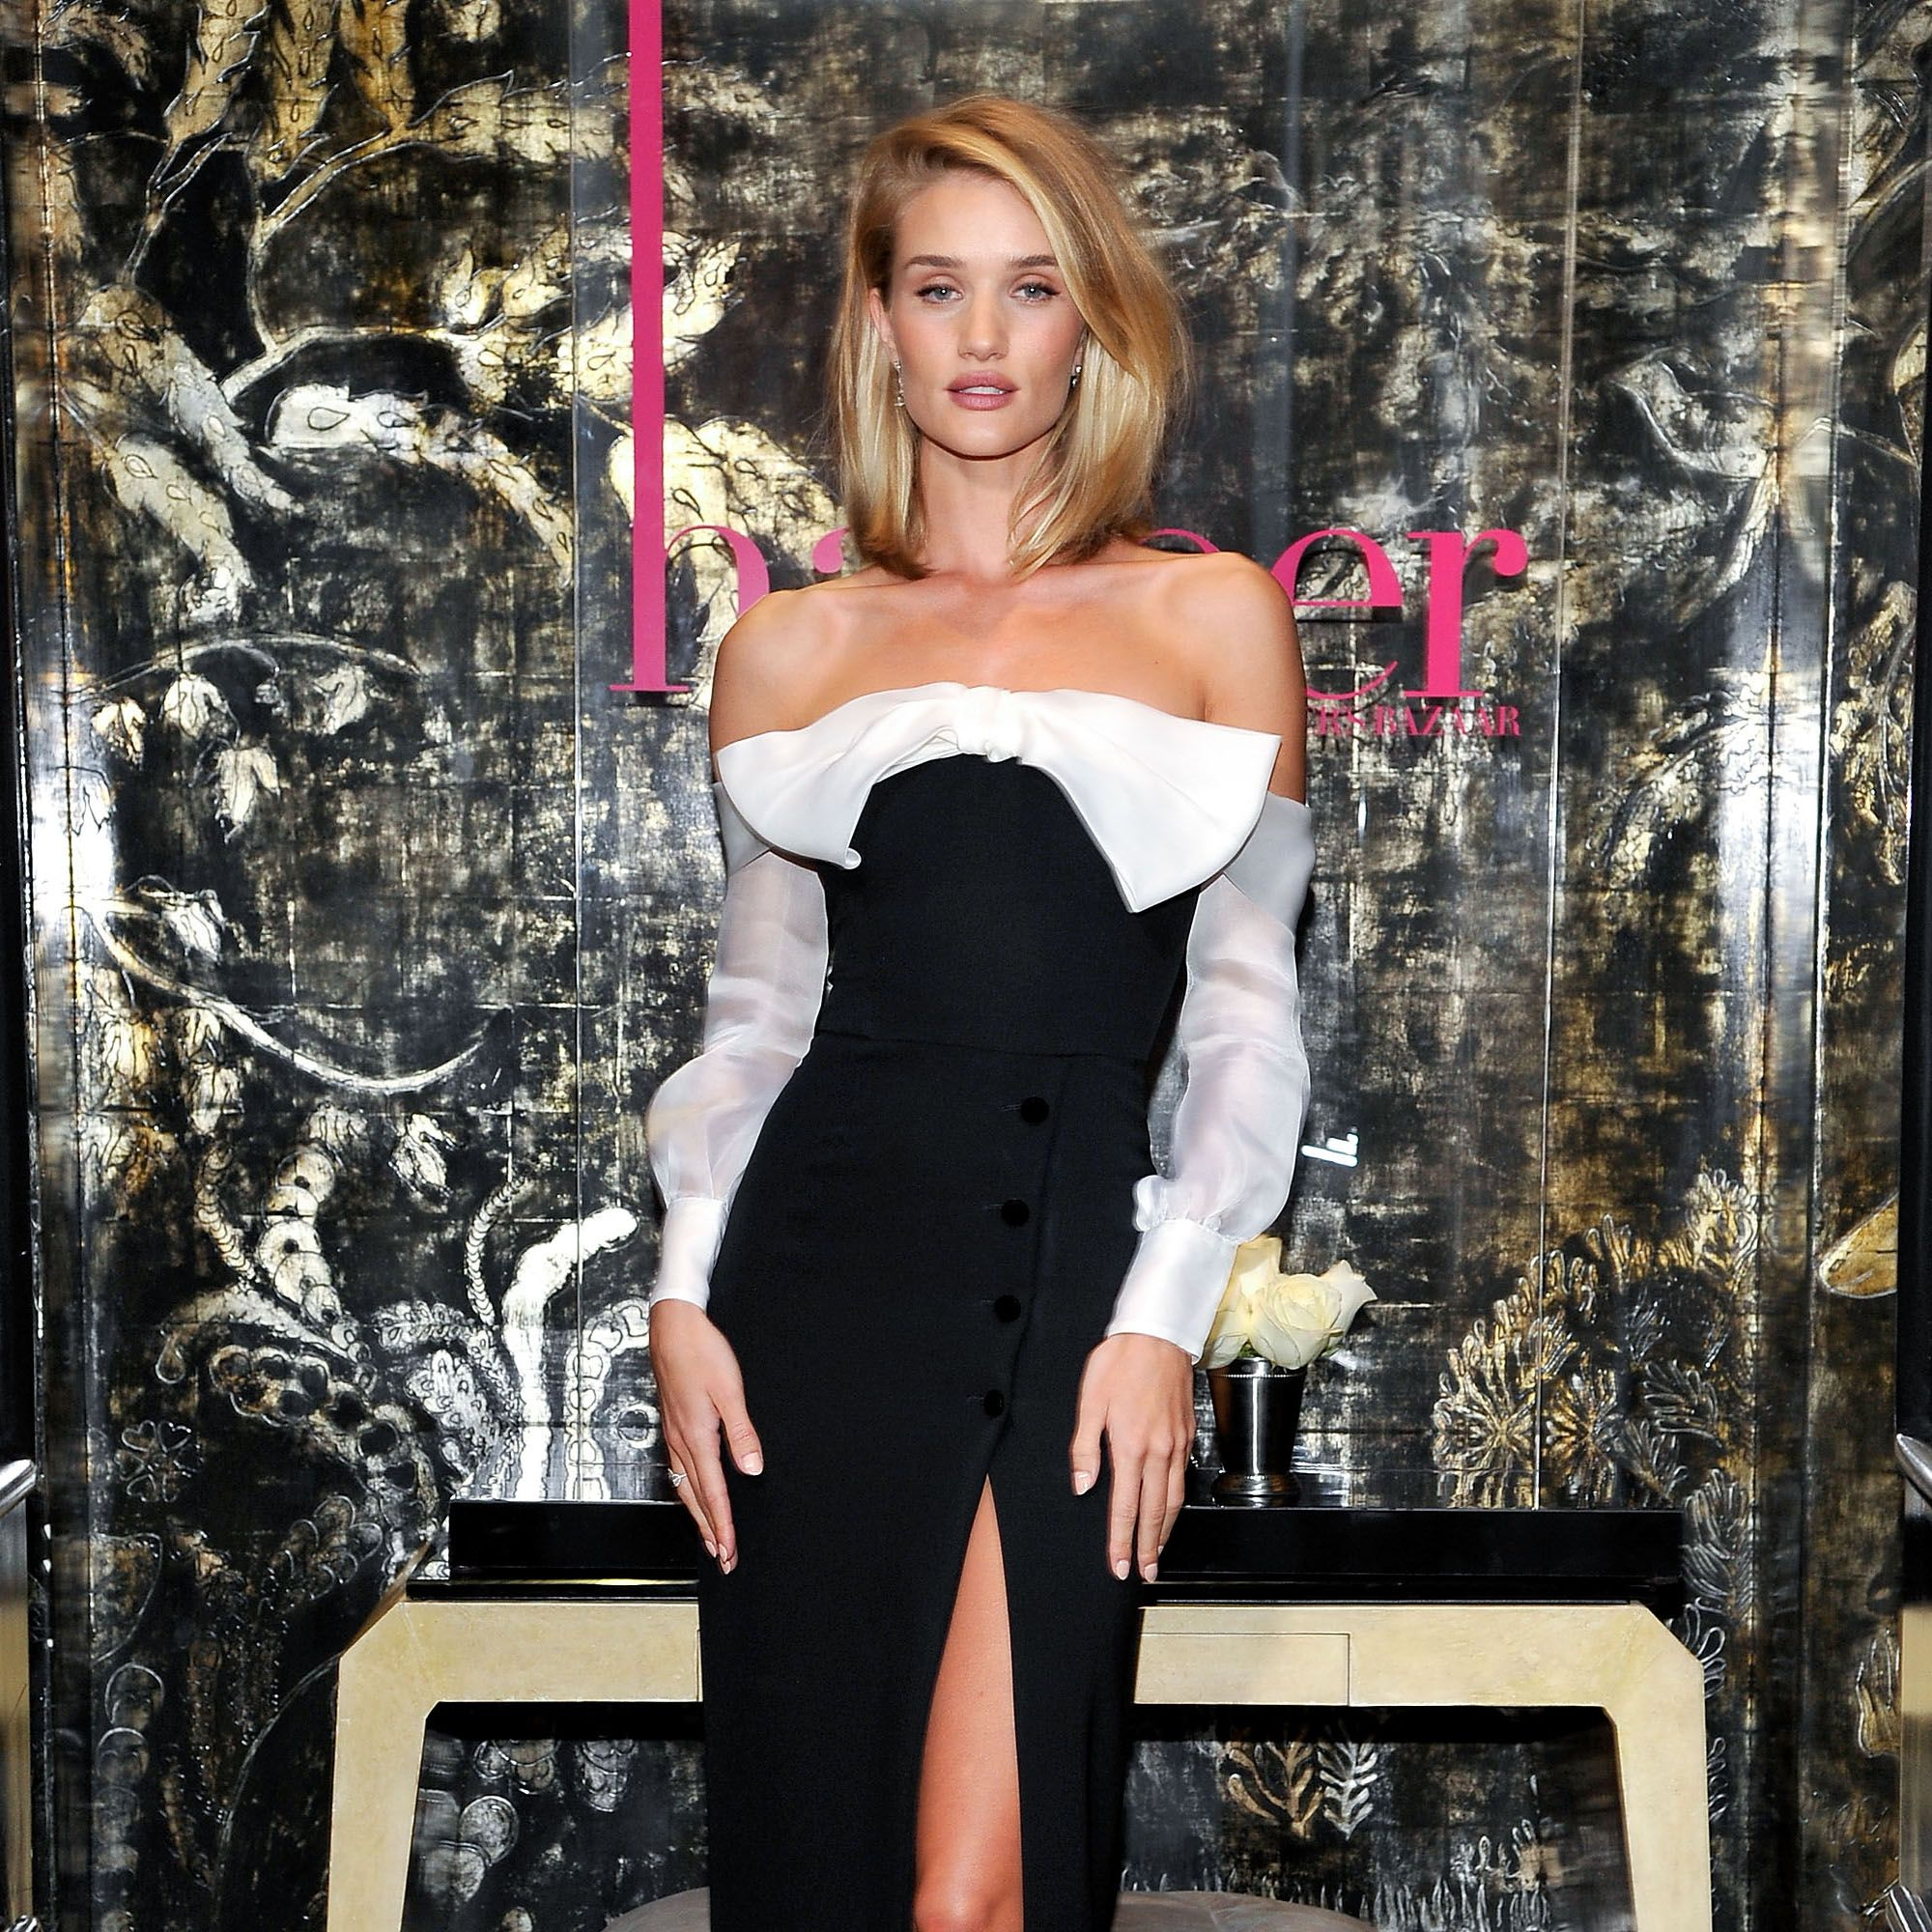 LOS ANGELES, CA - APRIL 21:  Model/actress Rosie Huntington-Whiteley attends harper by Harper's BAZAAR at Violet Grey with Rosie Huntington-Whiteley on April 21, 2015 in Los Angeles, California.  (Photo by John Sciulli/Getty Images for Harper's BAZAAR)